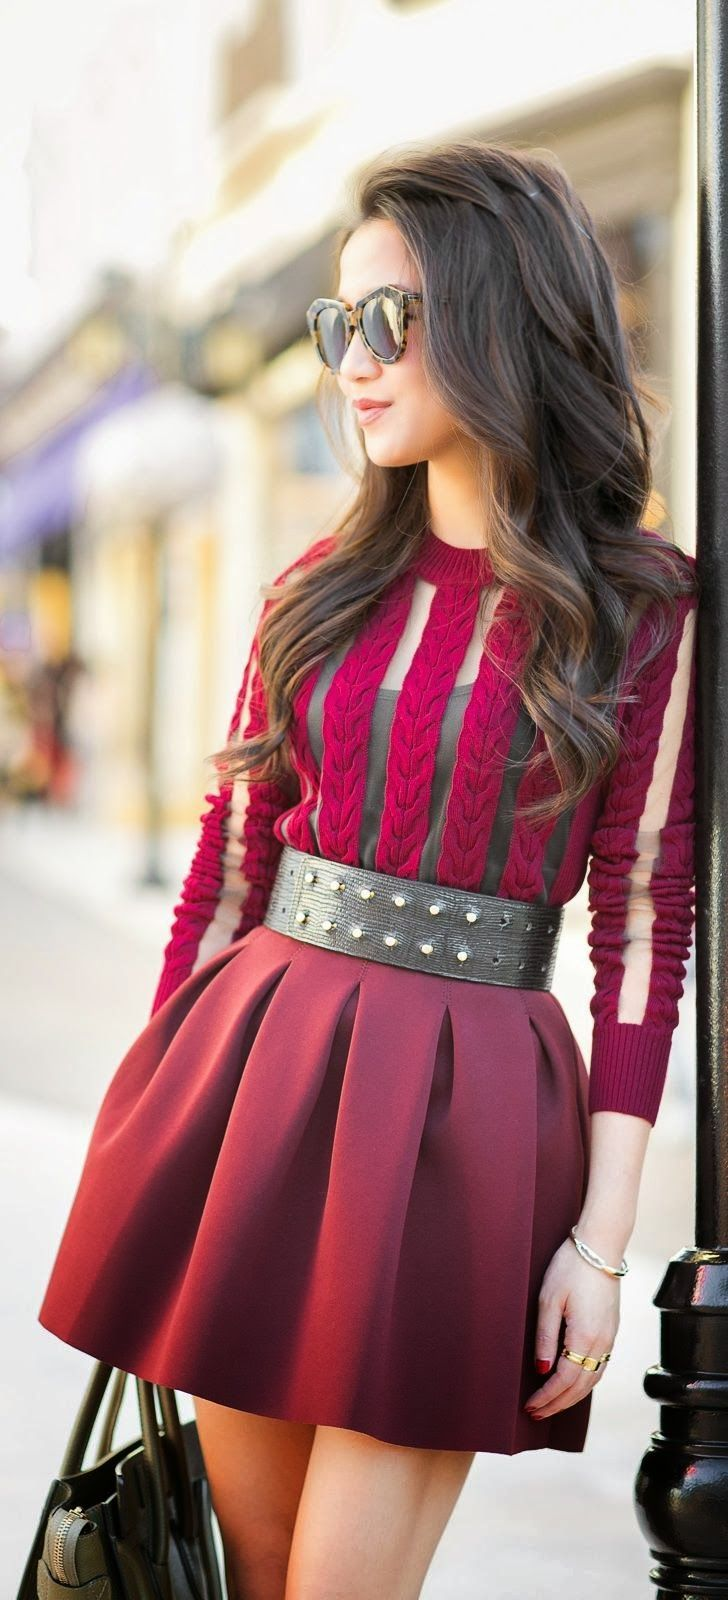 nicely skirt with belt